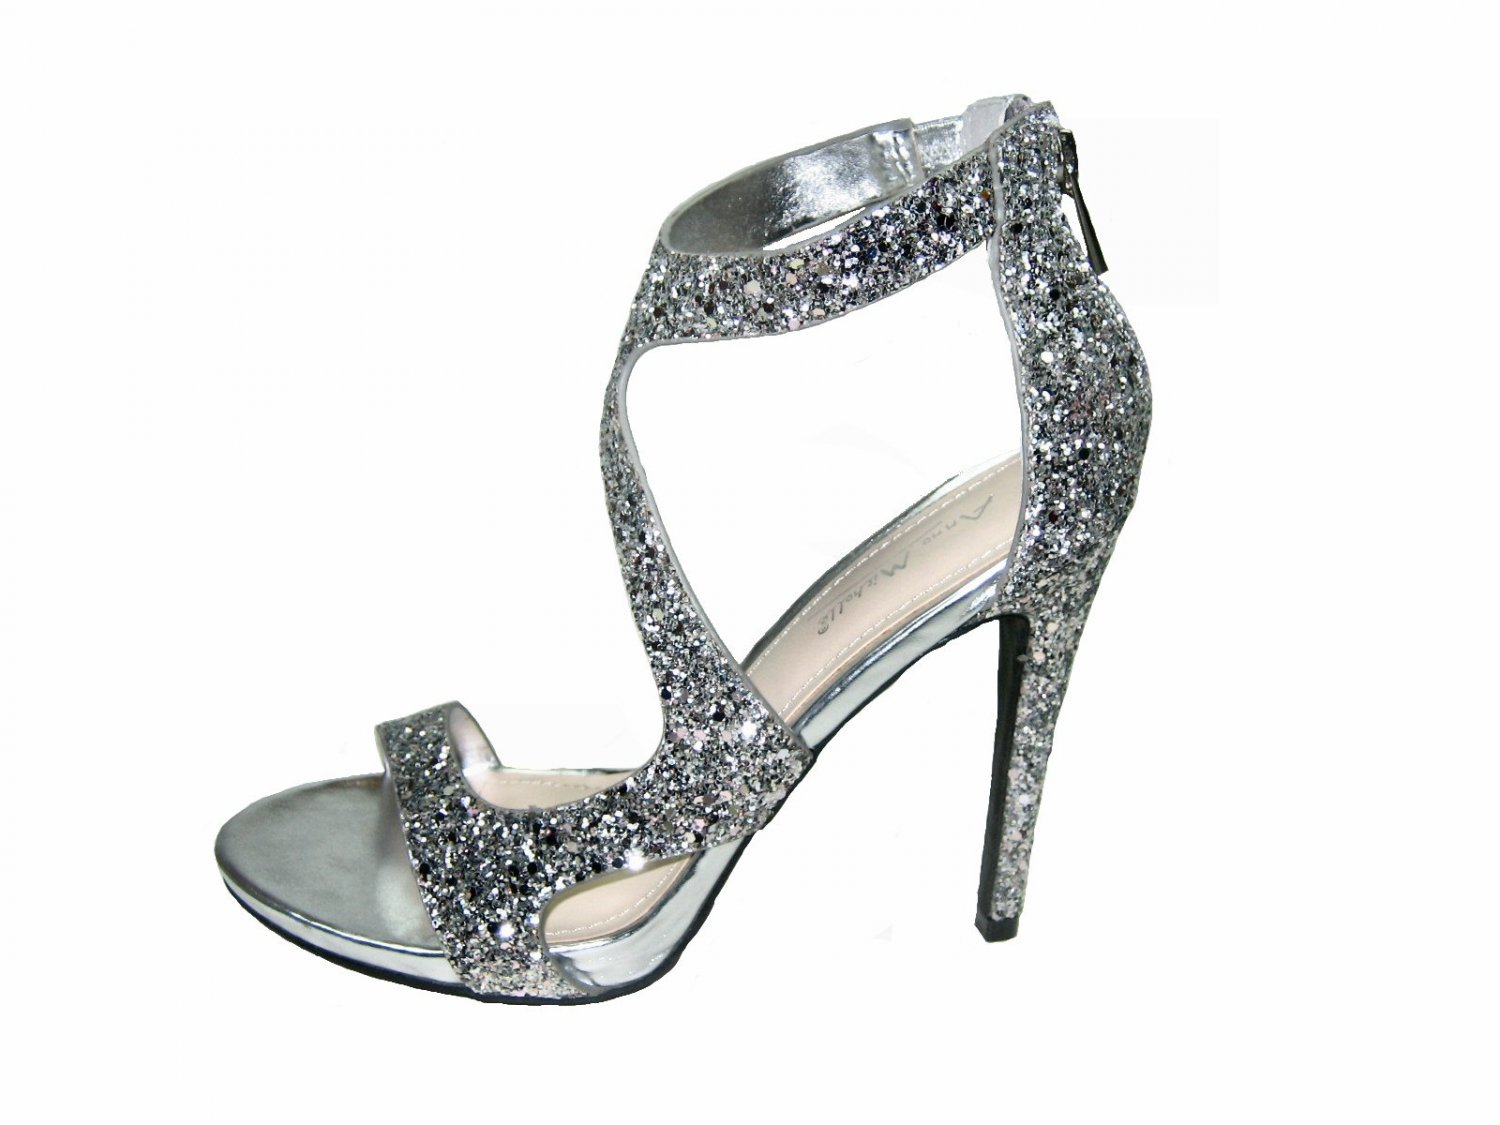 Strappy Silver Heels For Wedding - Is Heel